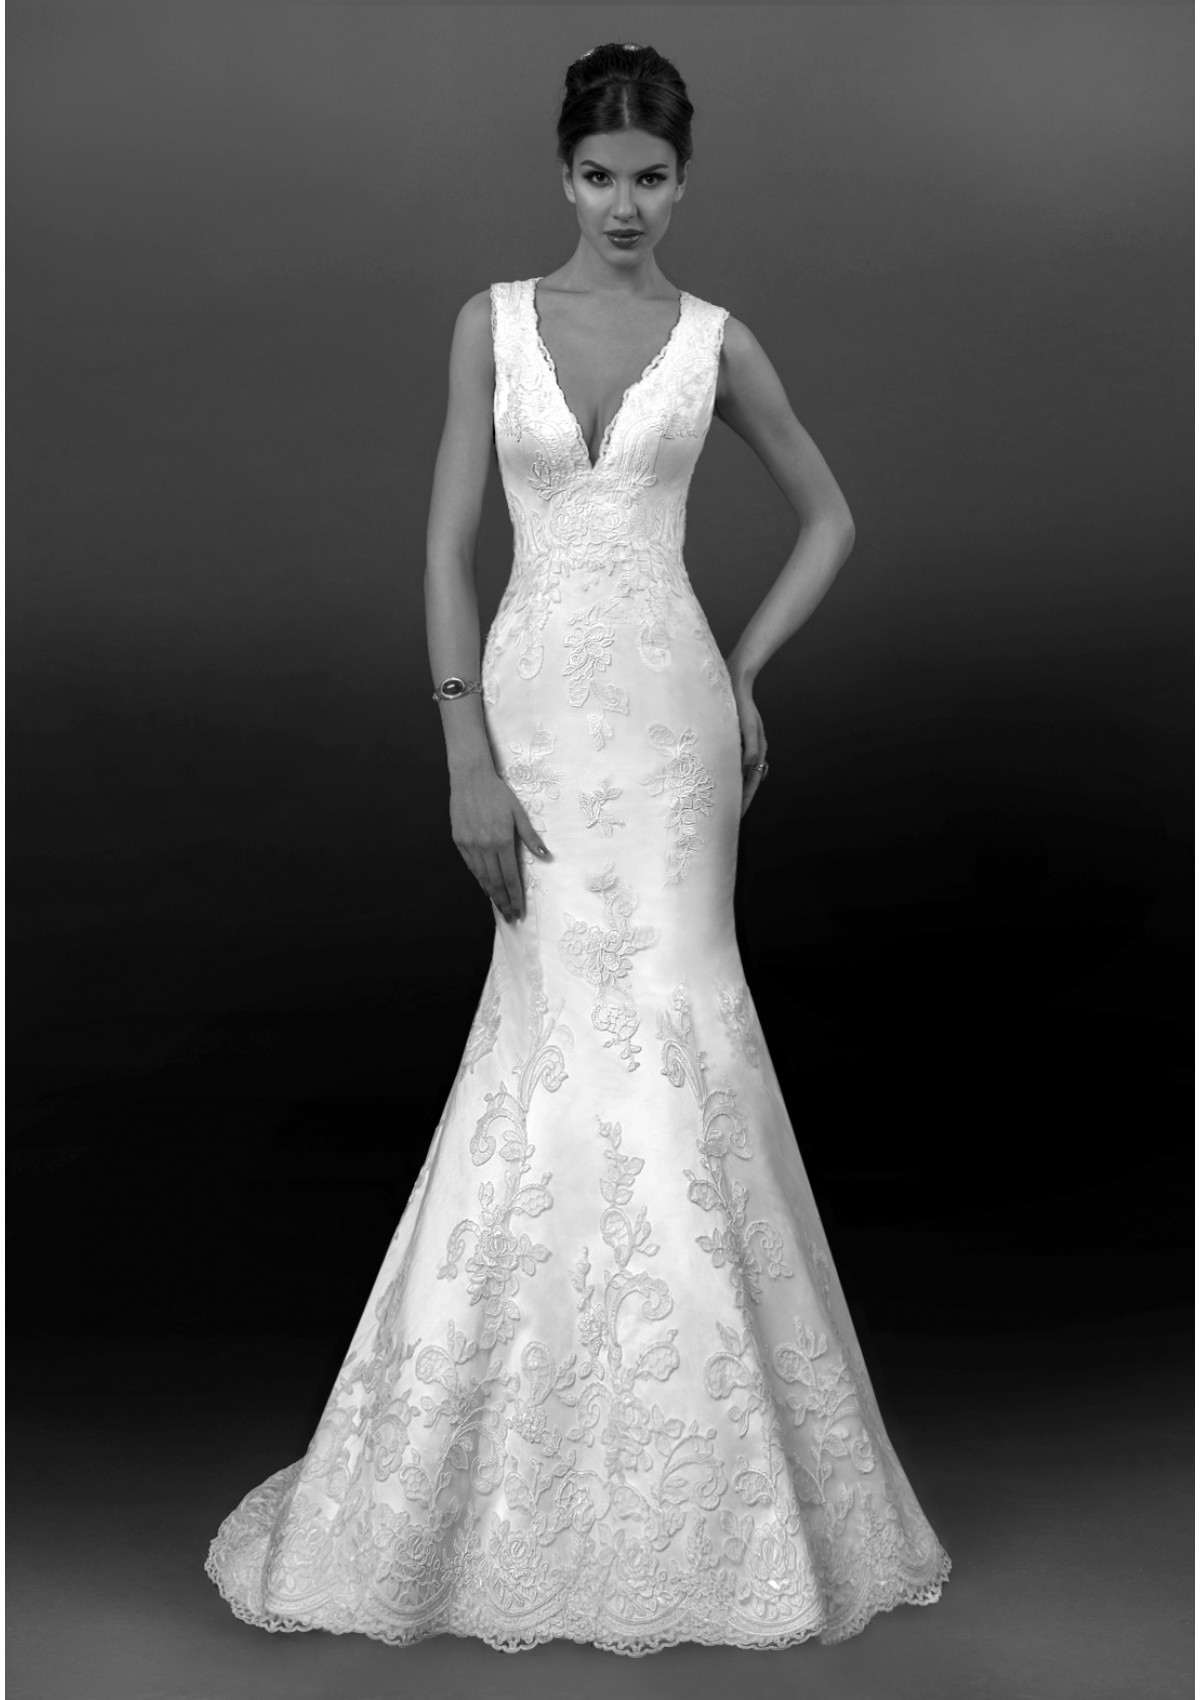 bien-savvy-wedding-dresses-3-08272014nz